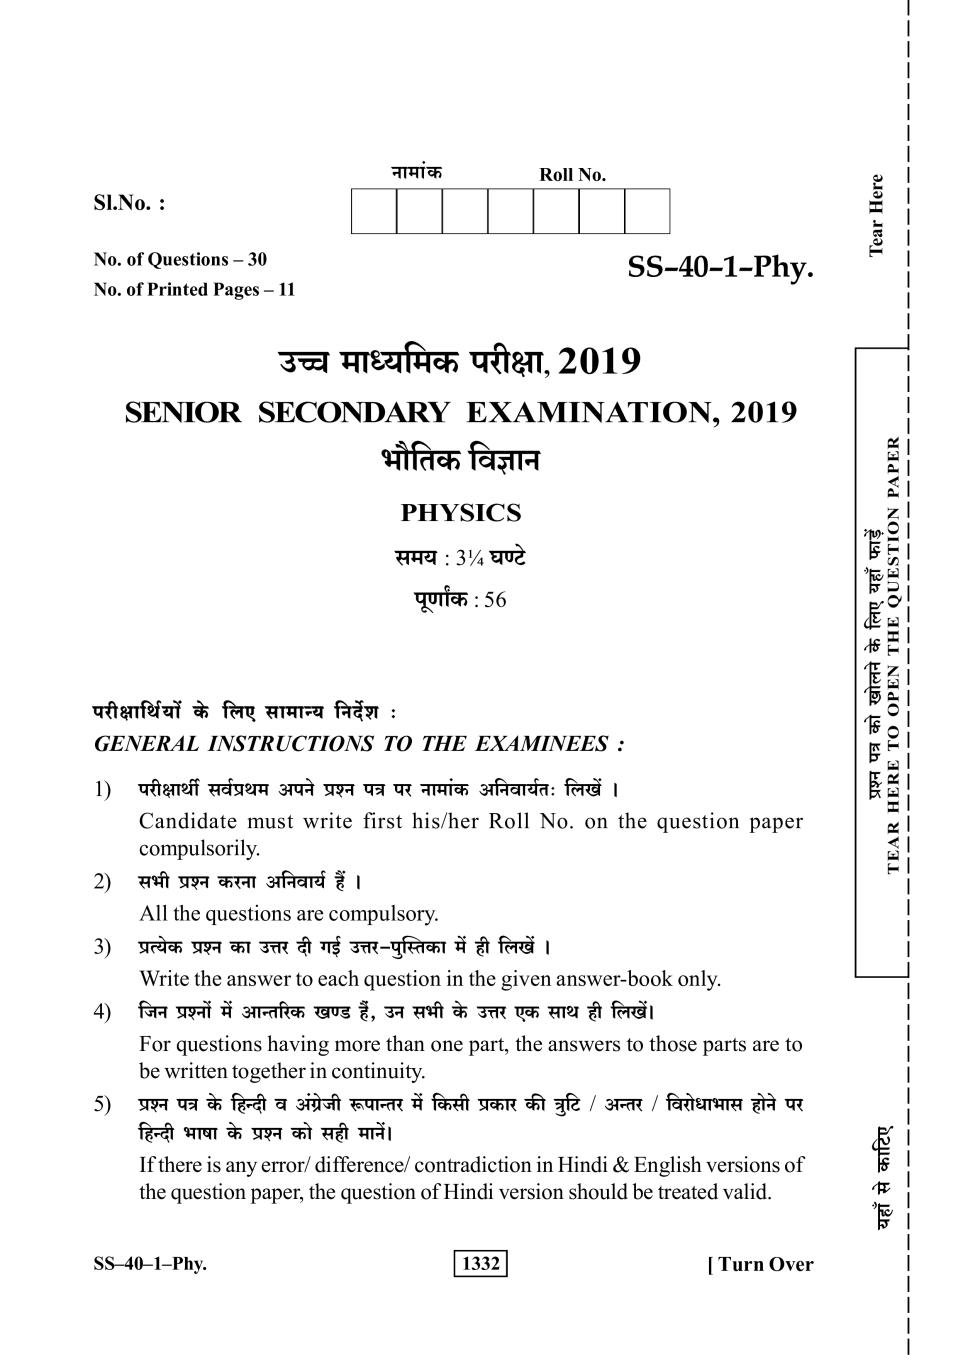 Rajasthan Board Sr. Secondary Physics Question Paper